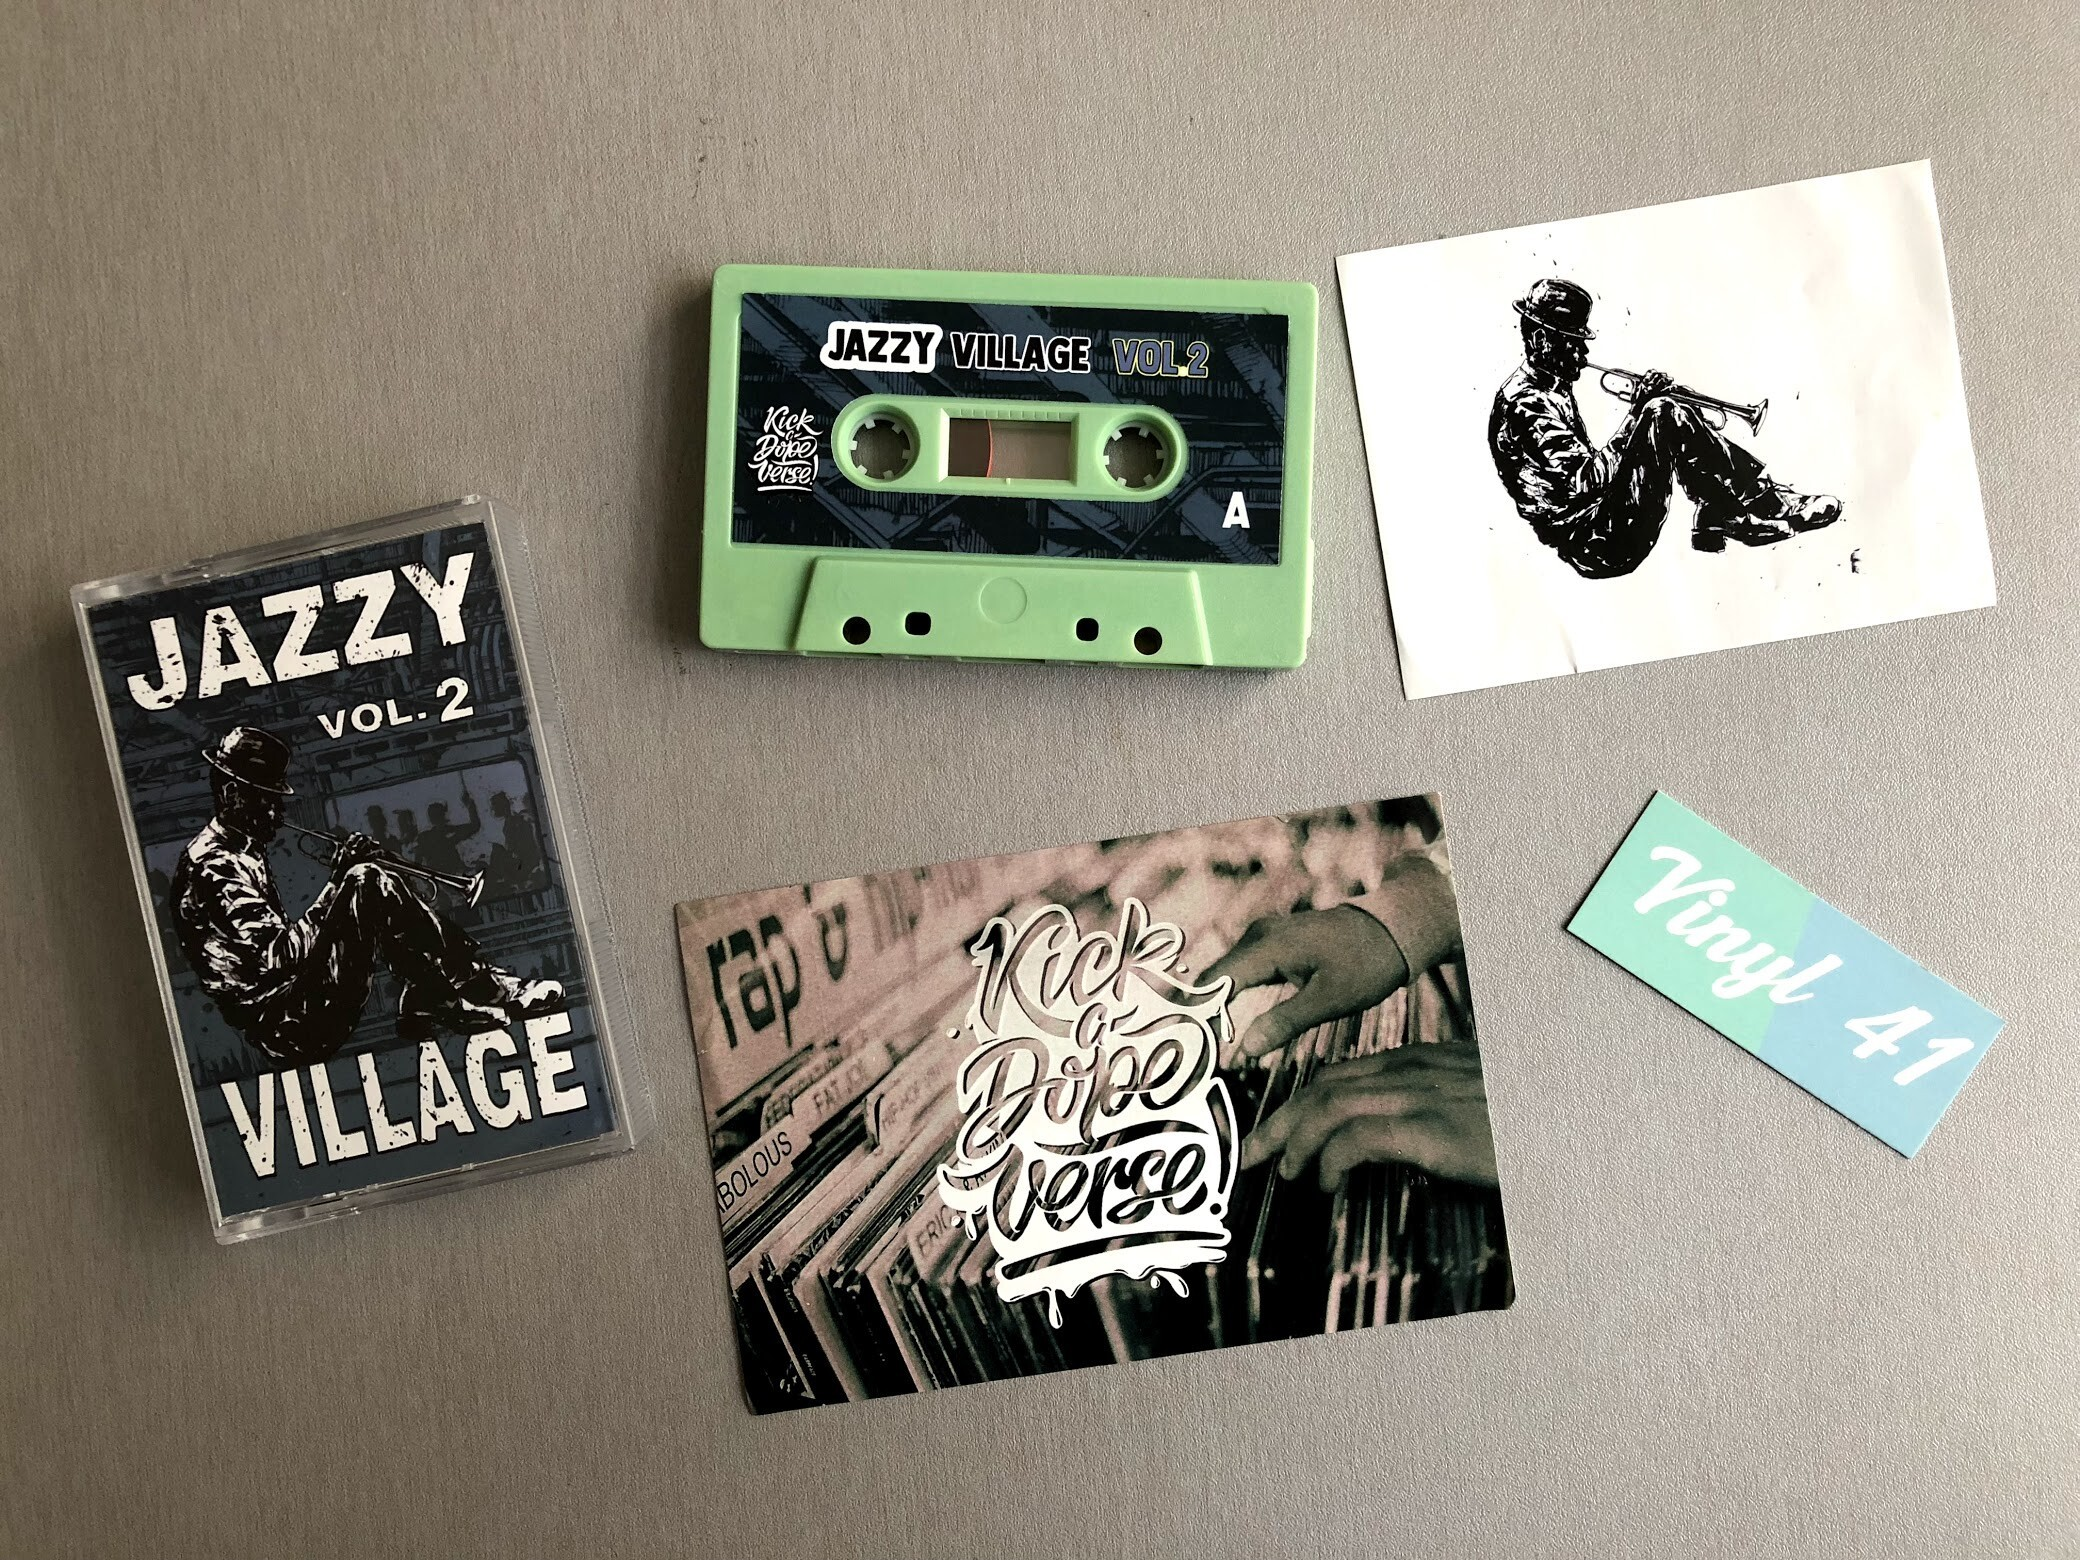 Jazzy Village Vol. 2 (KADV)